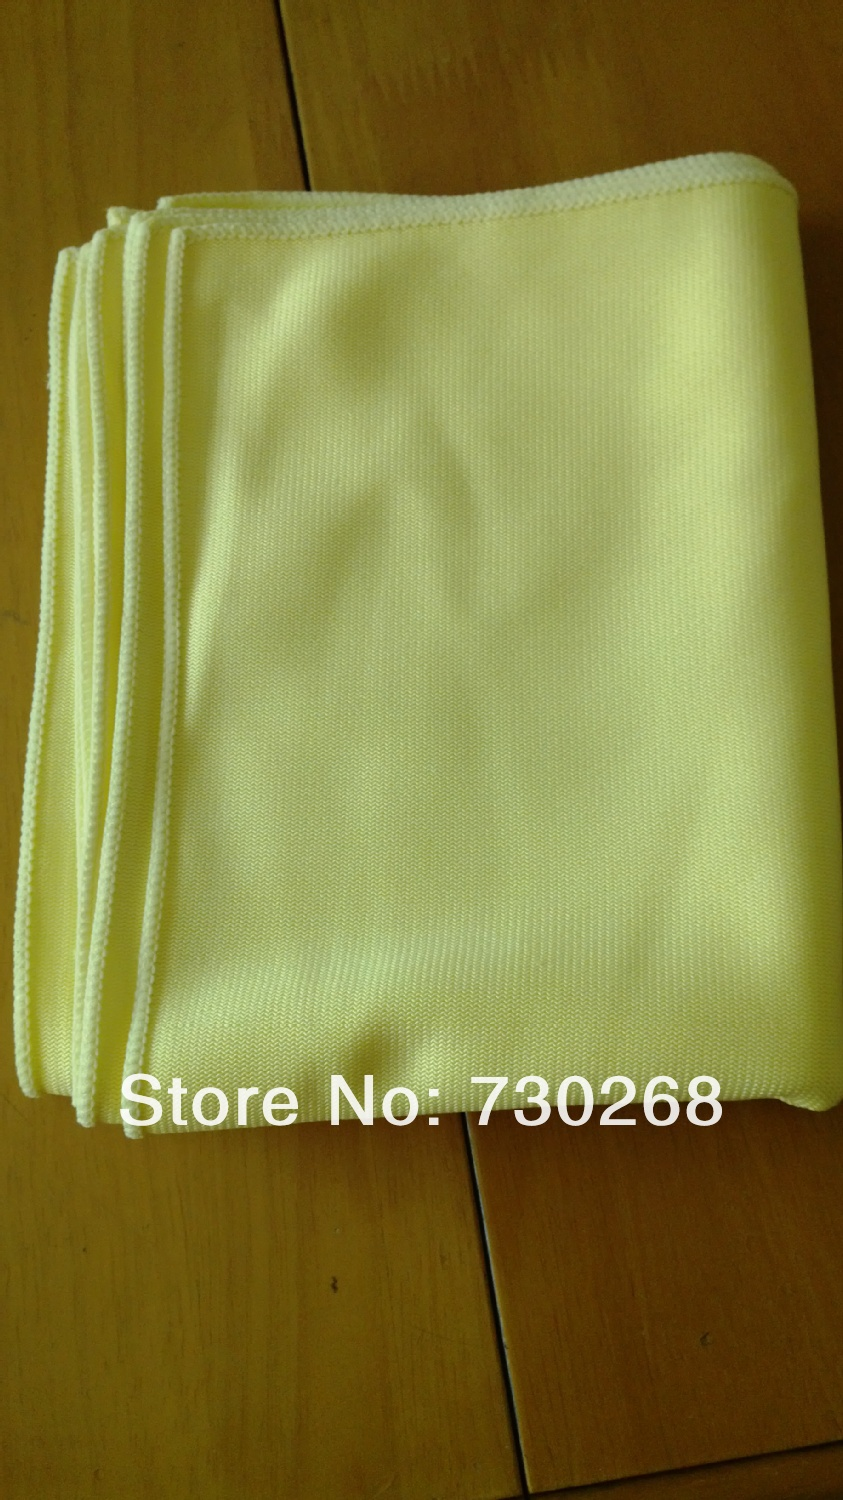 100 pcs microfiber & microfibre glass cleaning cloth car cleaning towel window cleaning wiping cloth polishing cleaning towel(China (Mainland))